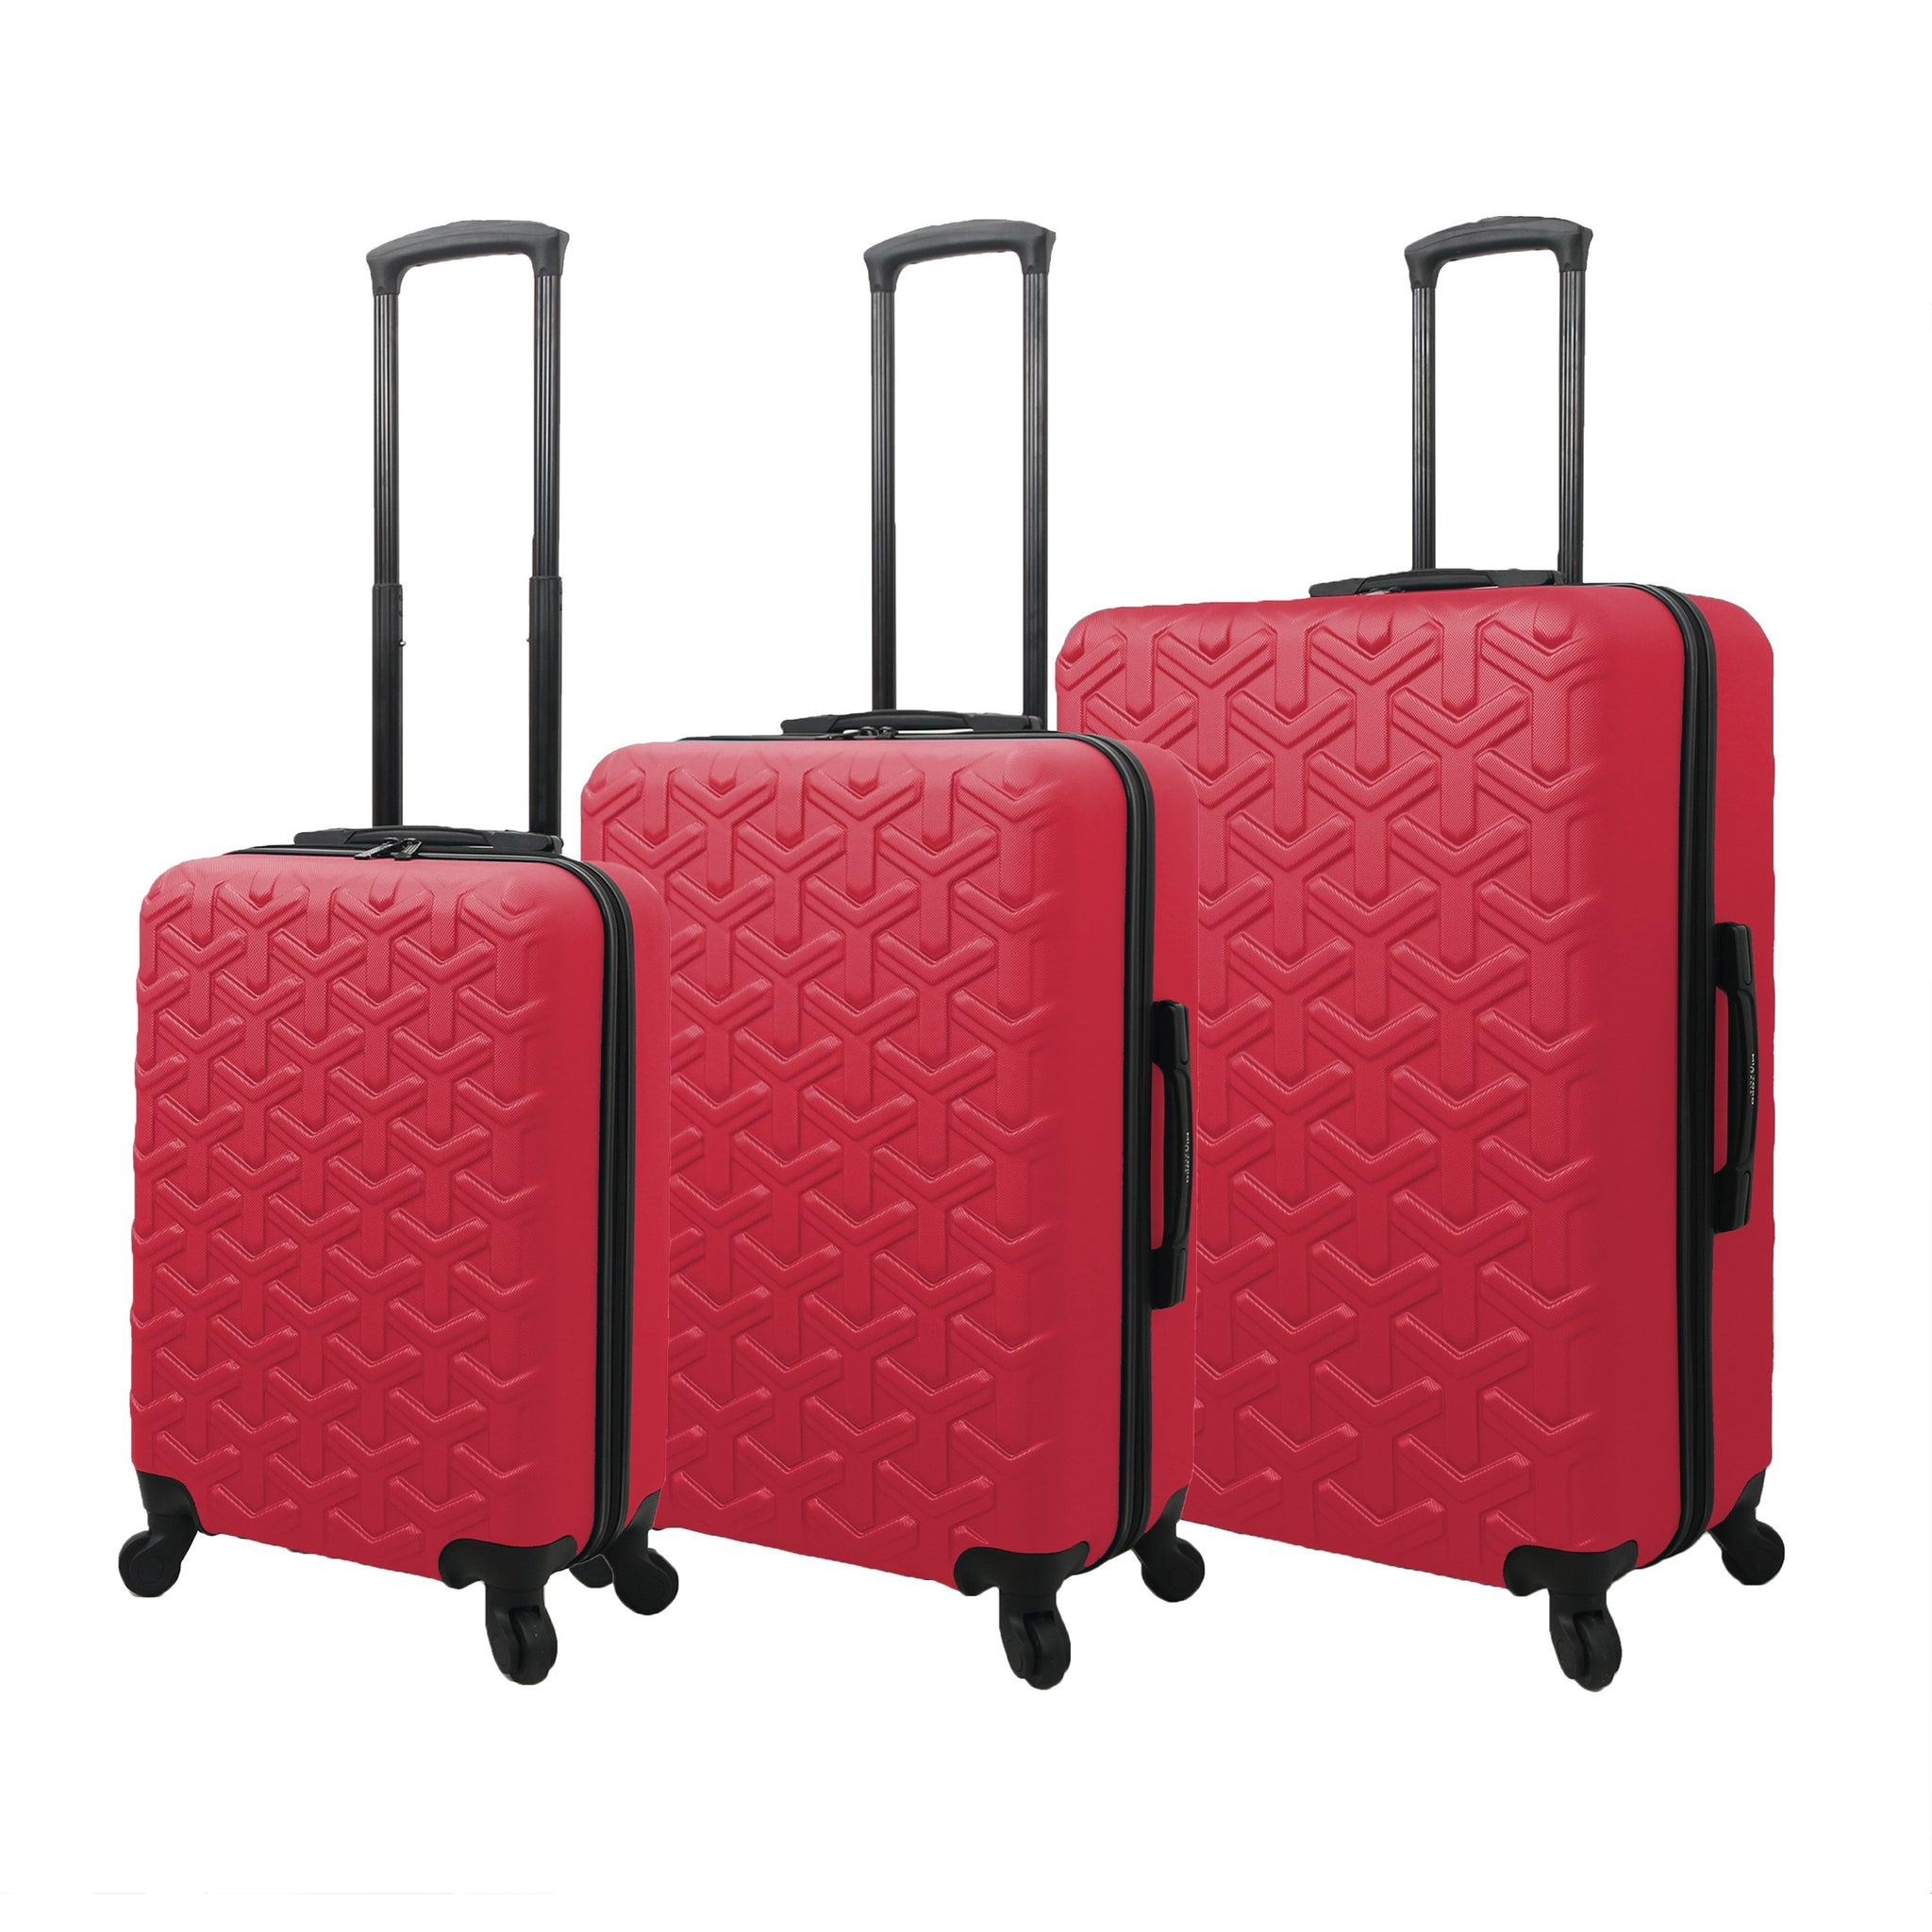 Mia Toro ITALY Molded Art Braid Hardside Spinner Luggage 3PC Set